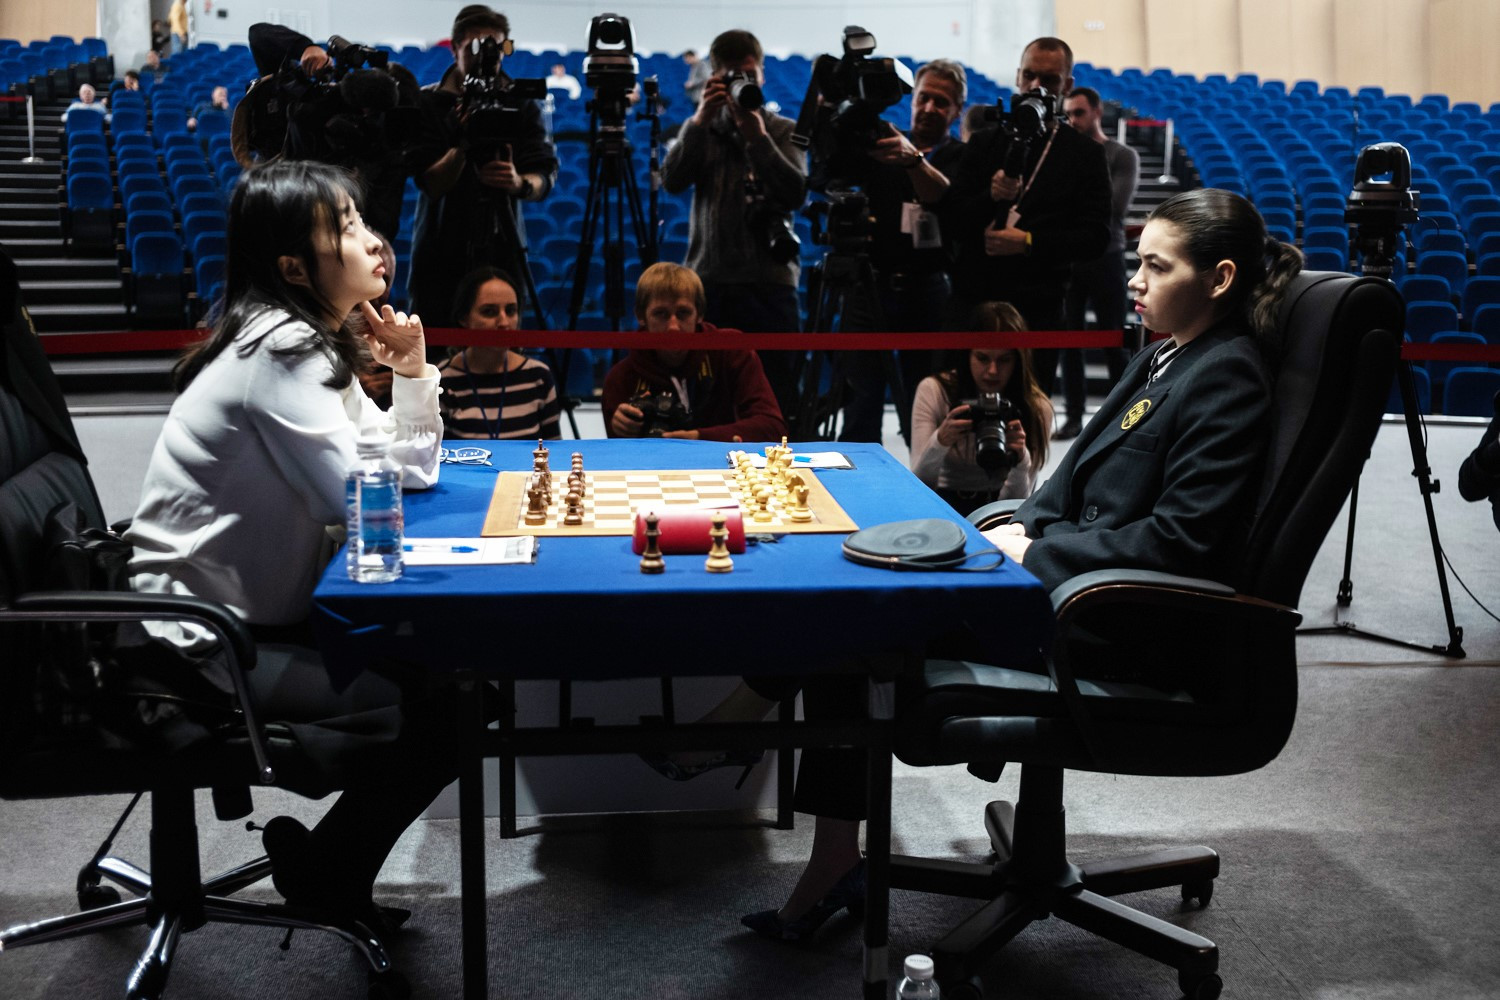 Goryachkina wins to send Women's World Chess Championship to tiebreaks